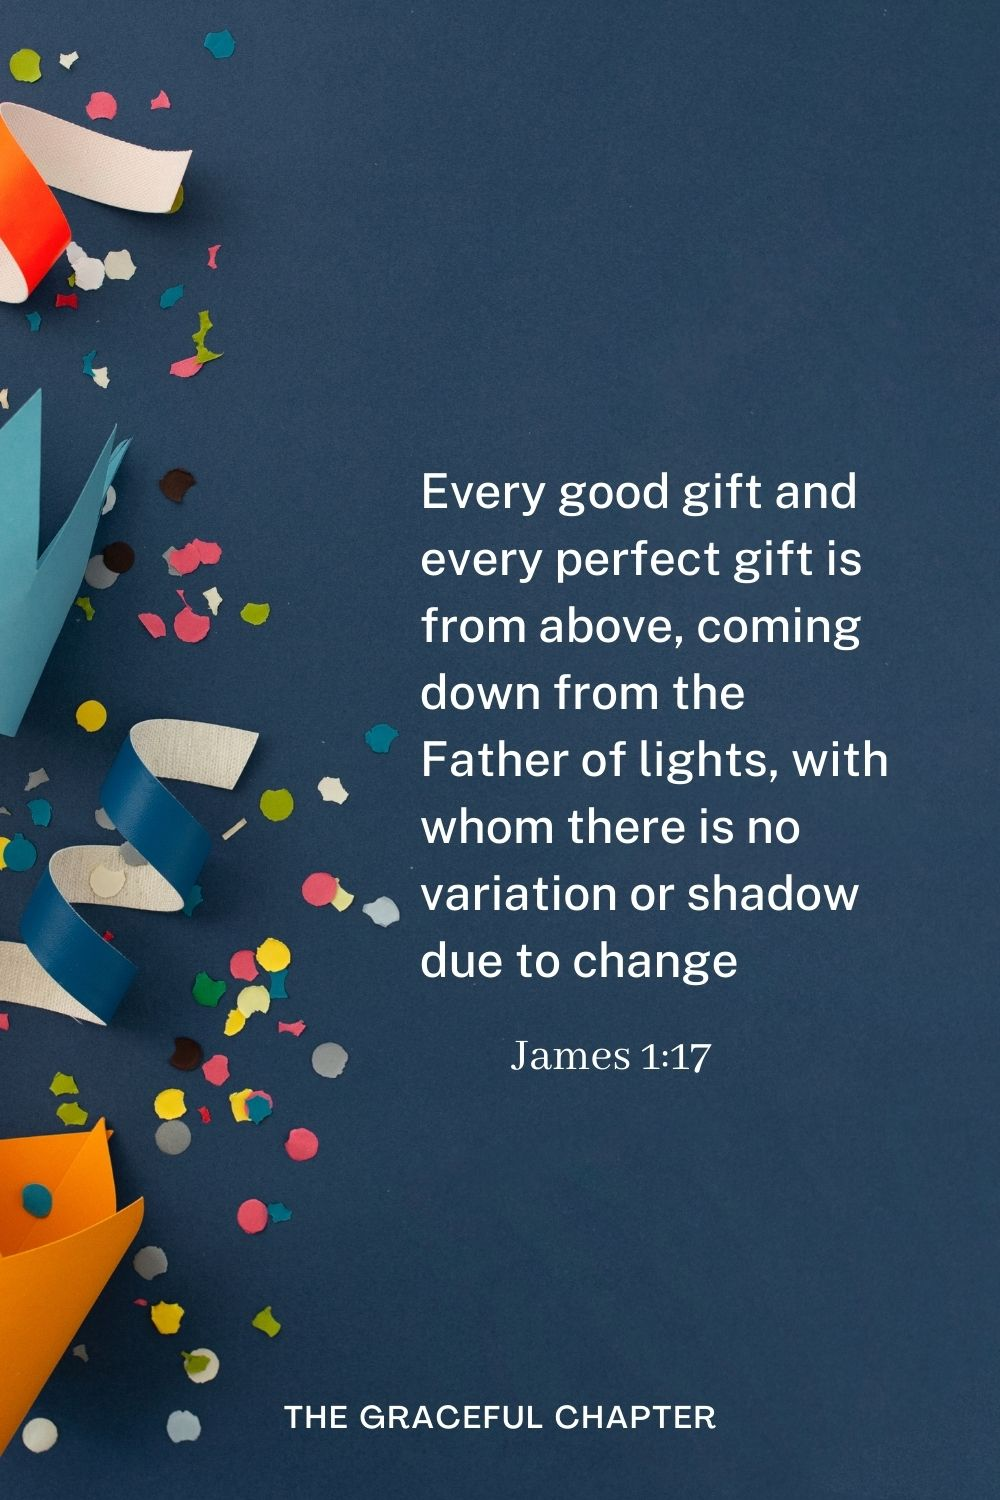 Every good gift and every perfect gift is from above, coming down from the Father of lights, with whom there is no variation or shadow due to change James 1:17